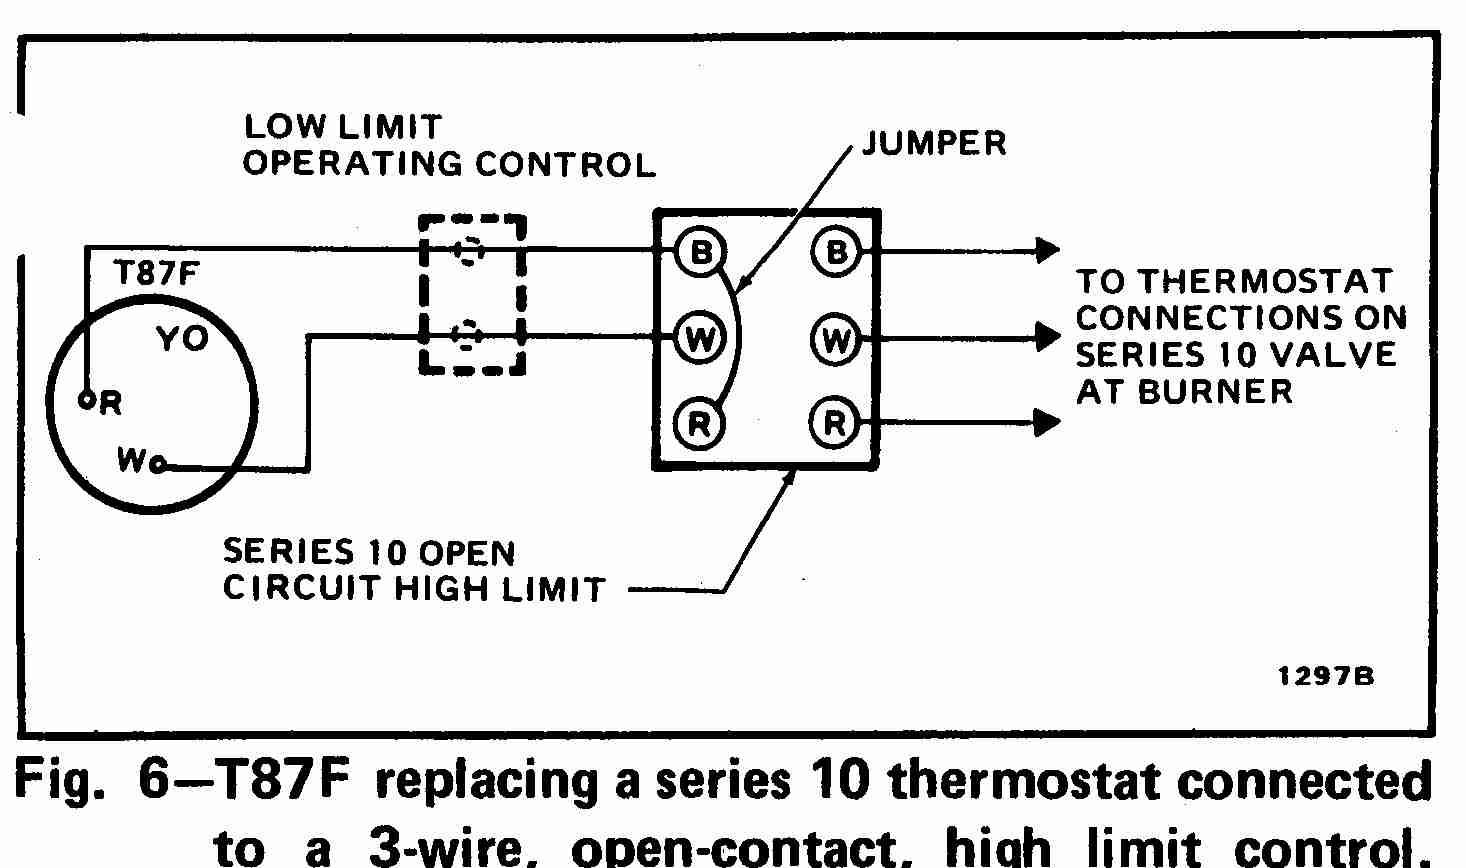 Wiring Schematic For Thermostat - Search For Wiring Diagrams •